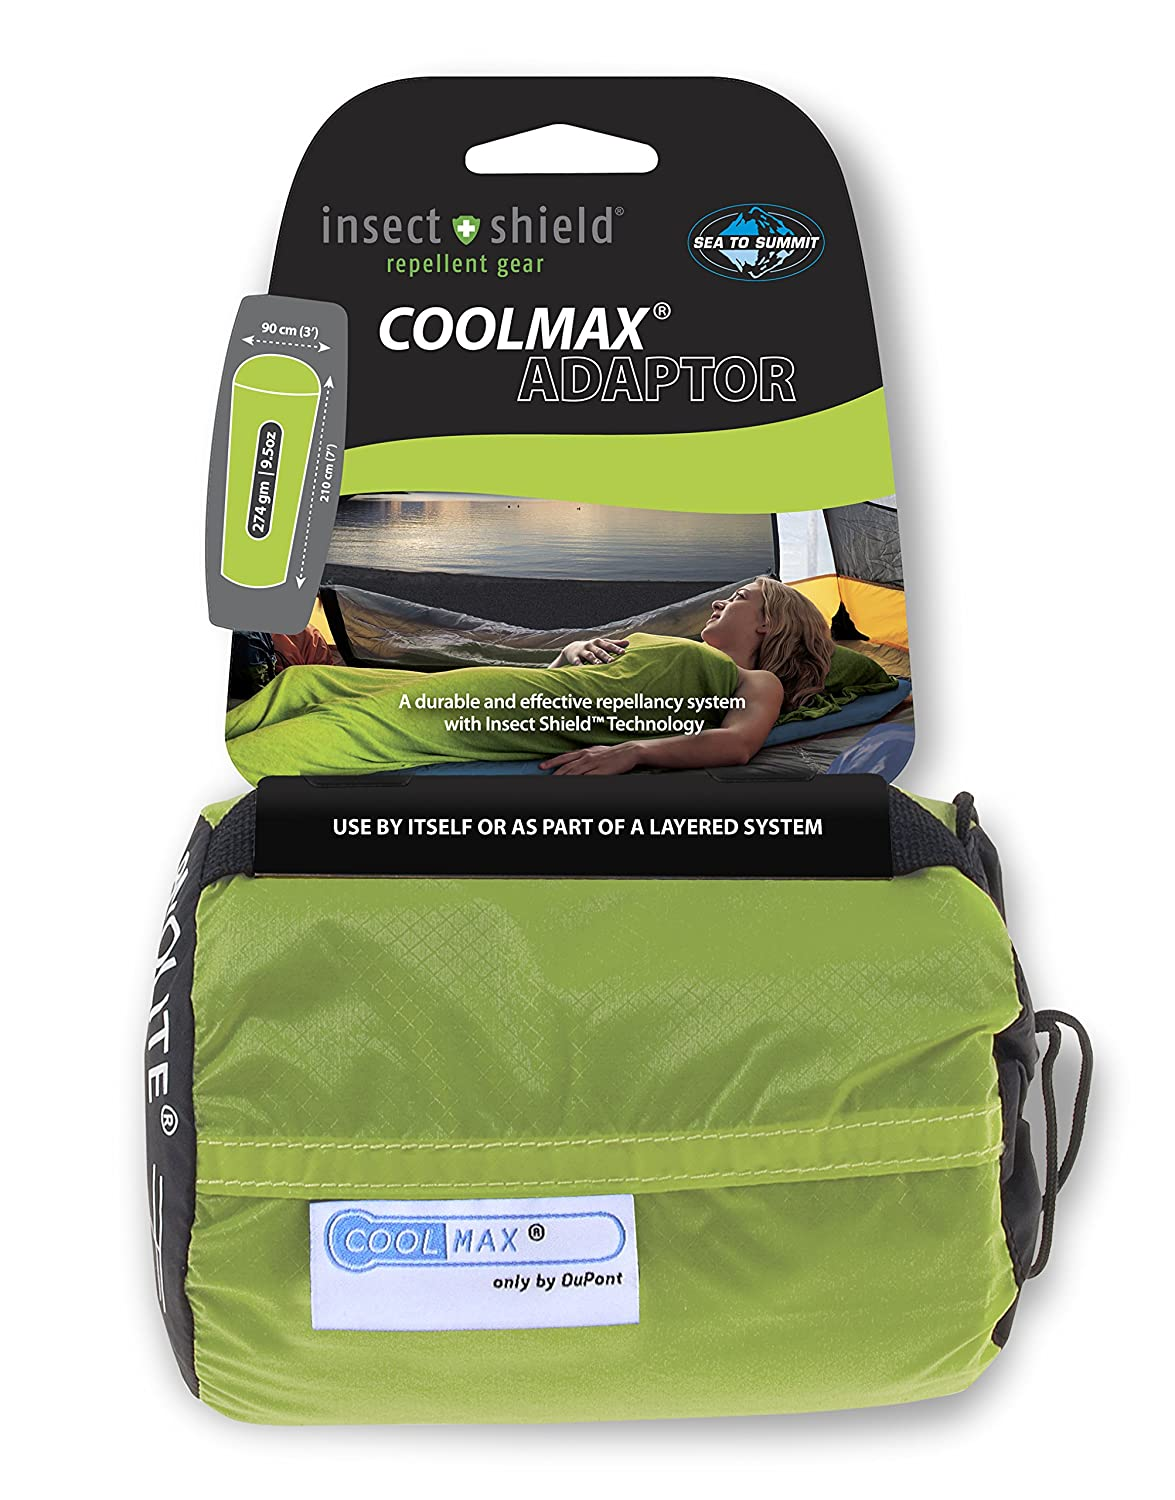 Sea to Summit Insect Shield CoolMax® Adapter bag liner